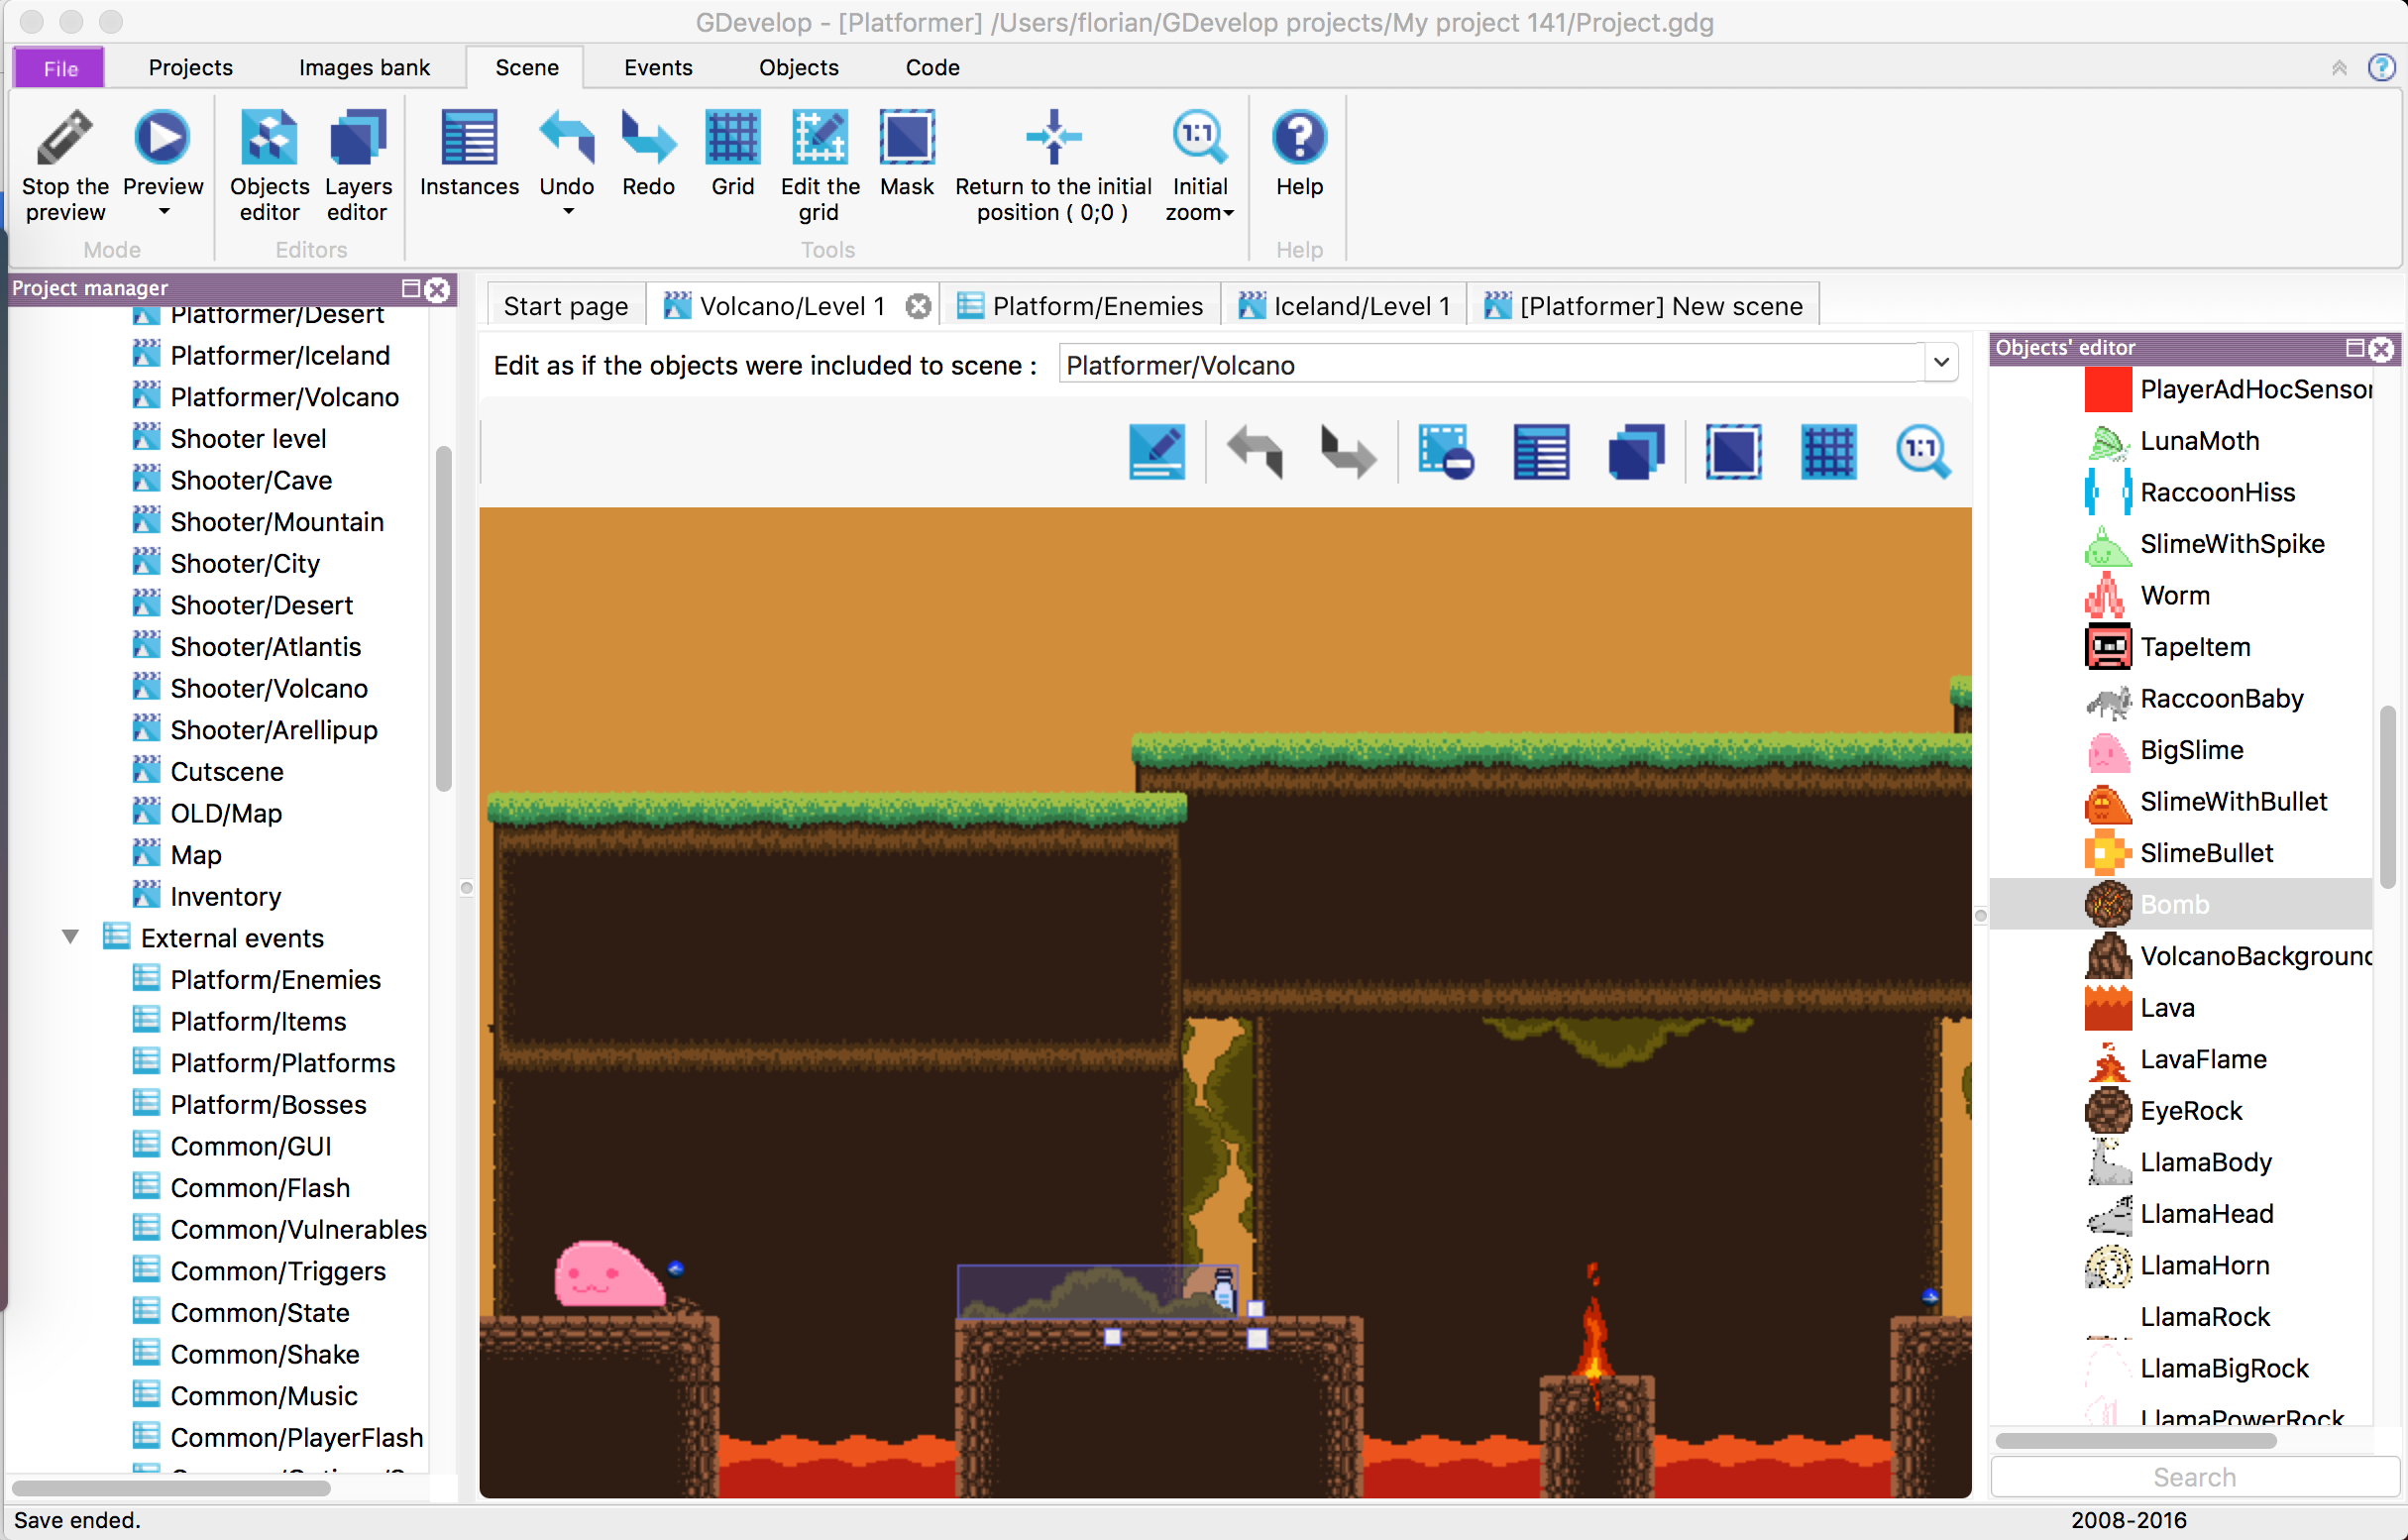 GDevelop screenshot